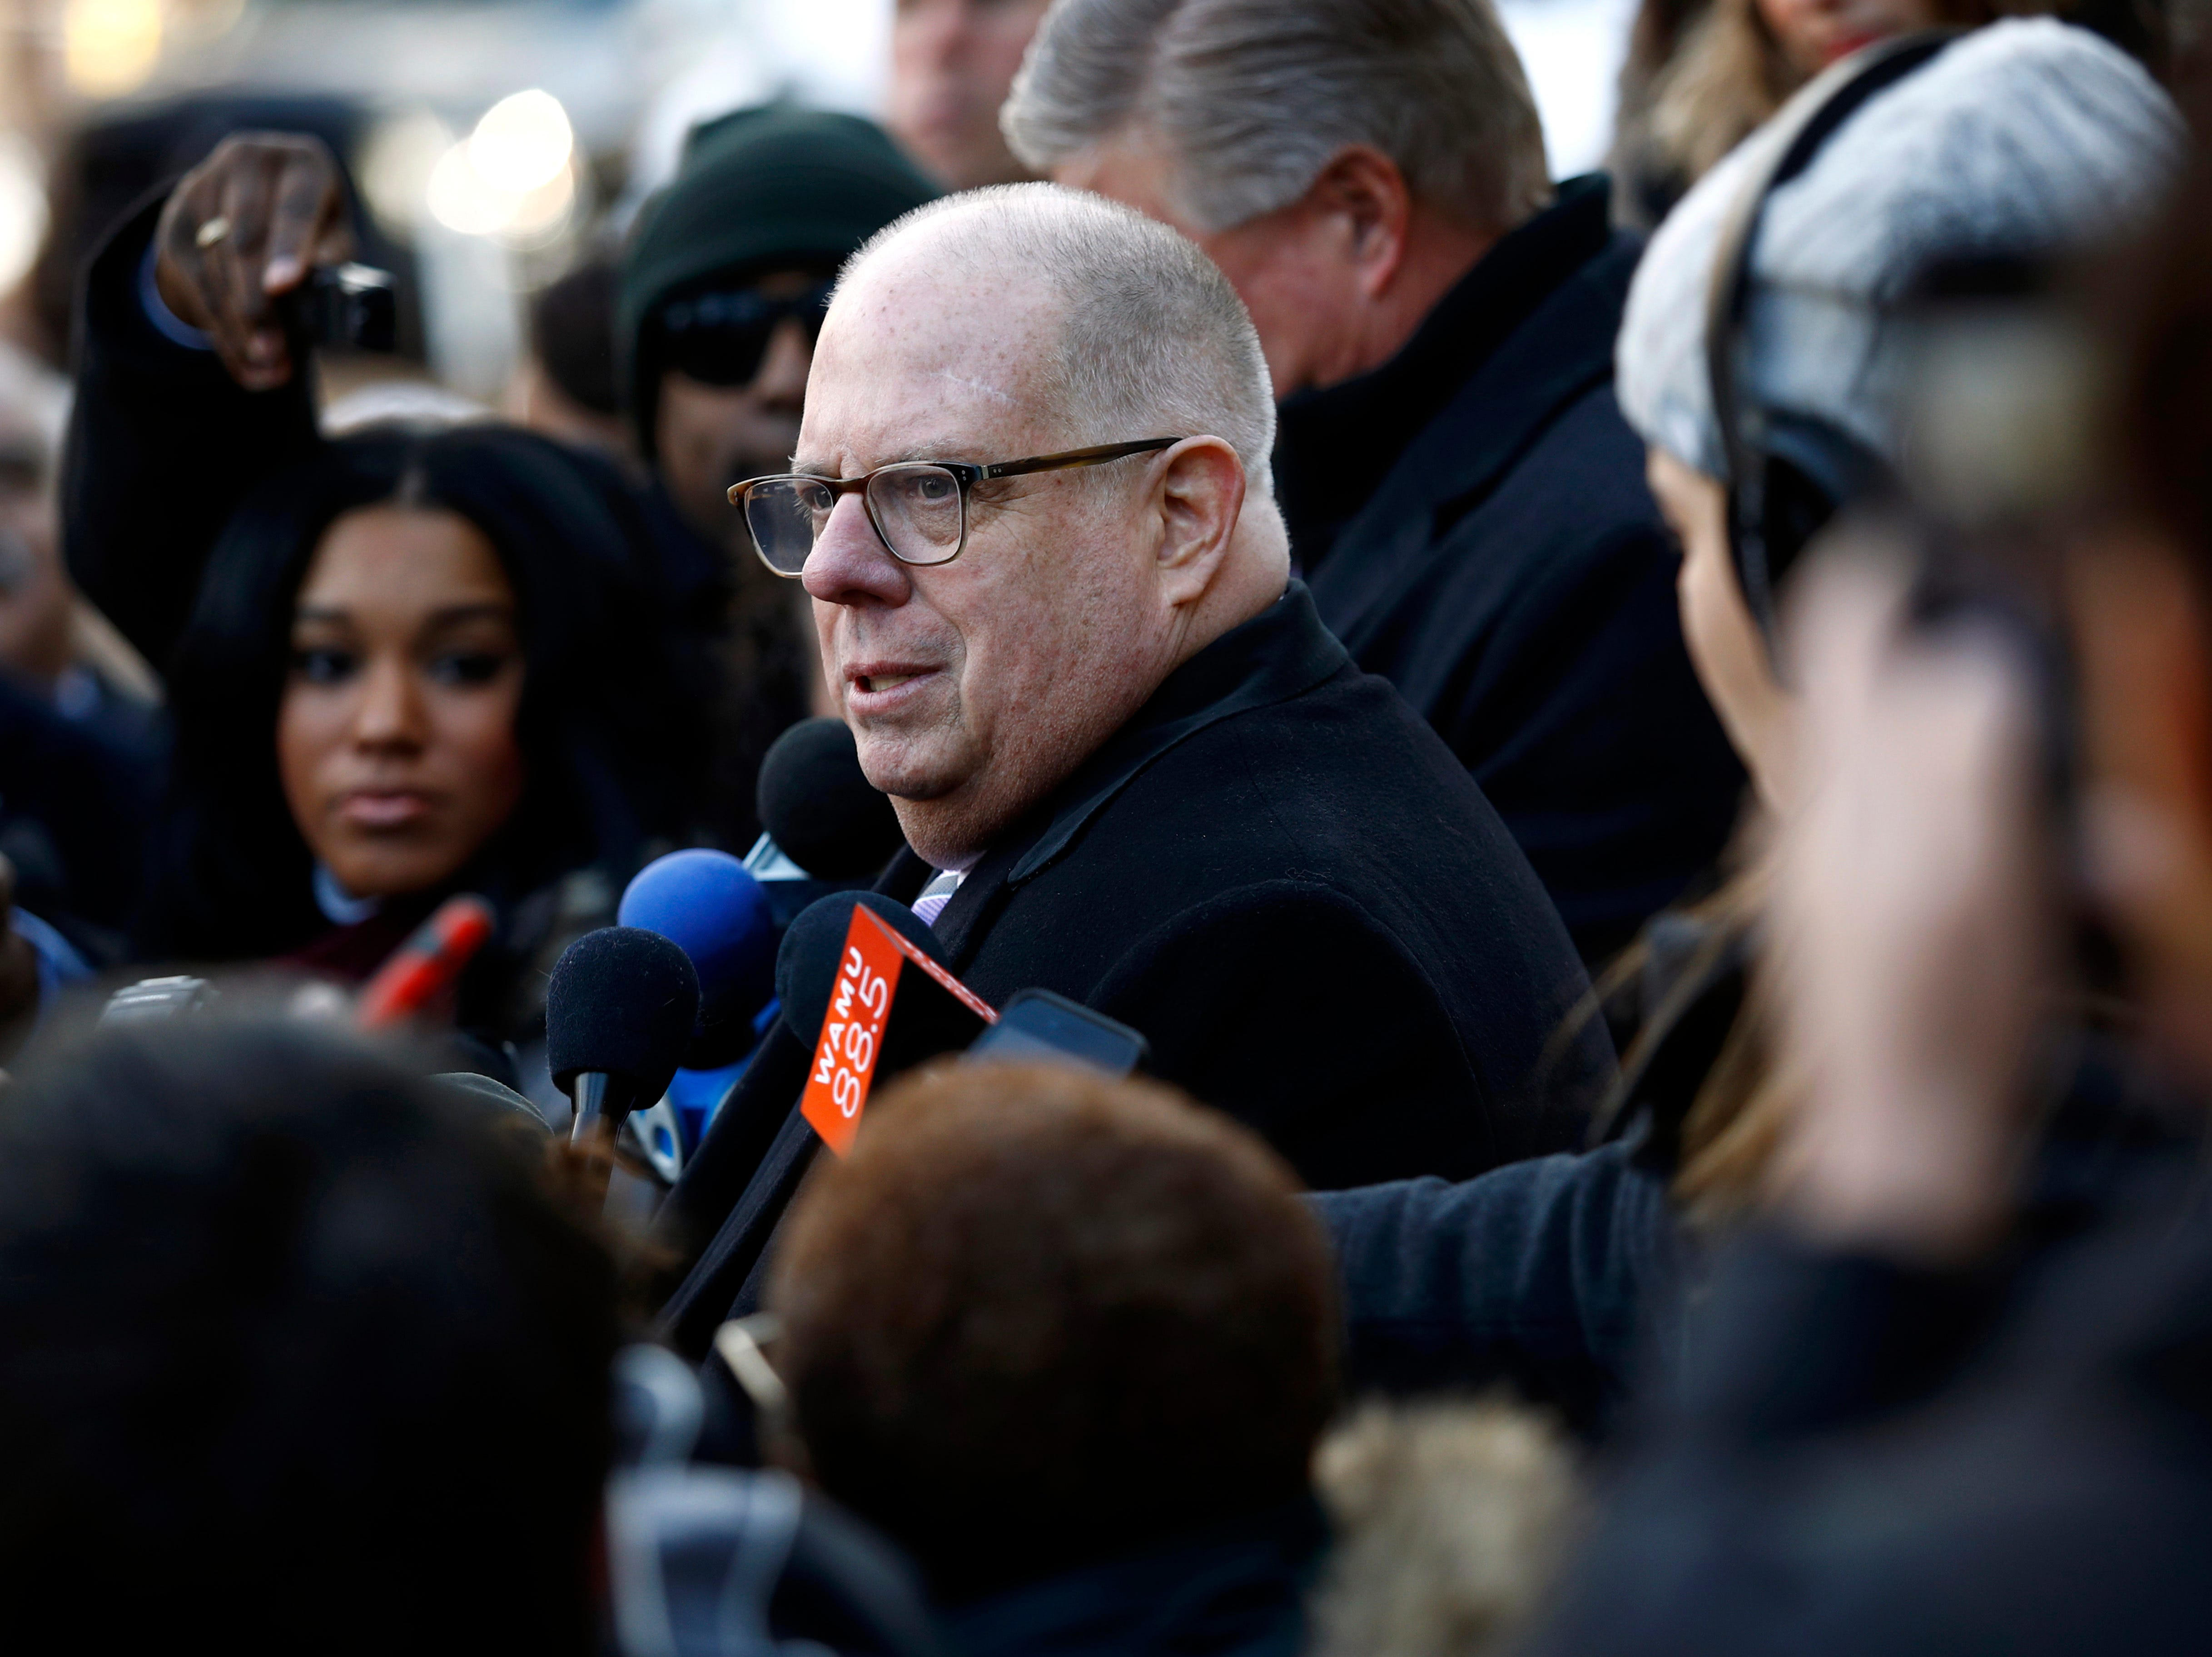 Maryland Gov. Larry Hogan, left, speaks with members of the news media outside the Maryland State House before his inauguration ceremony Wednesday, Jan. 16, 2019, in Annapolis.